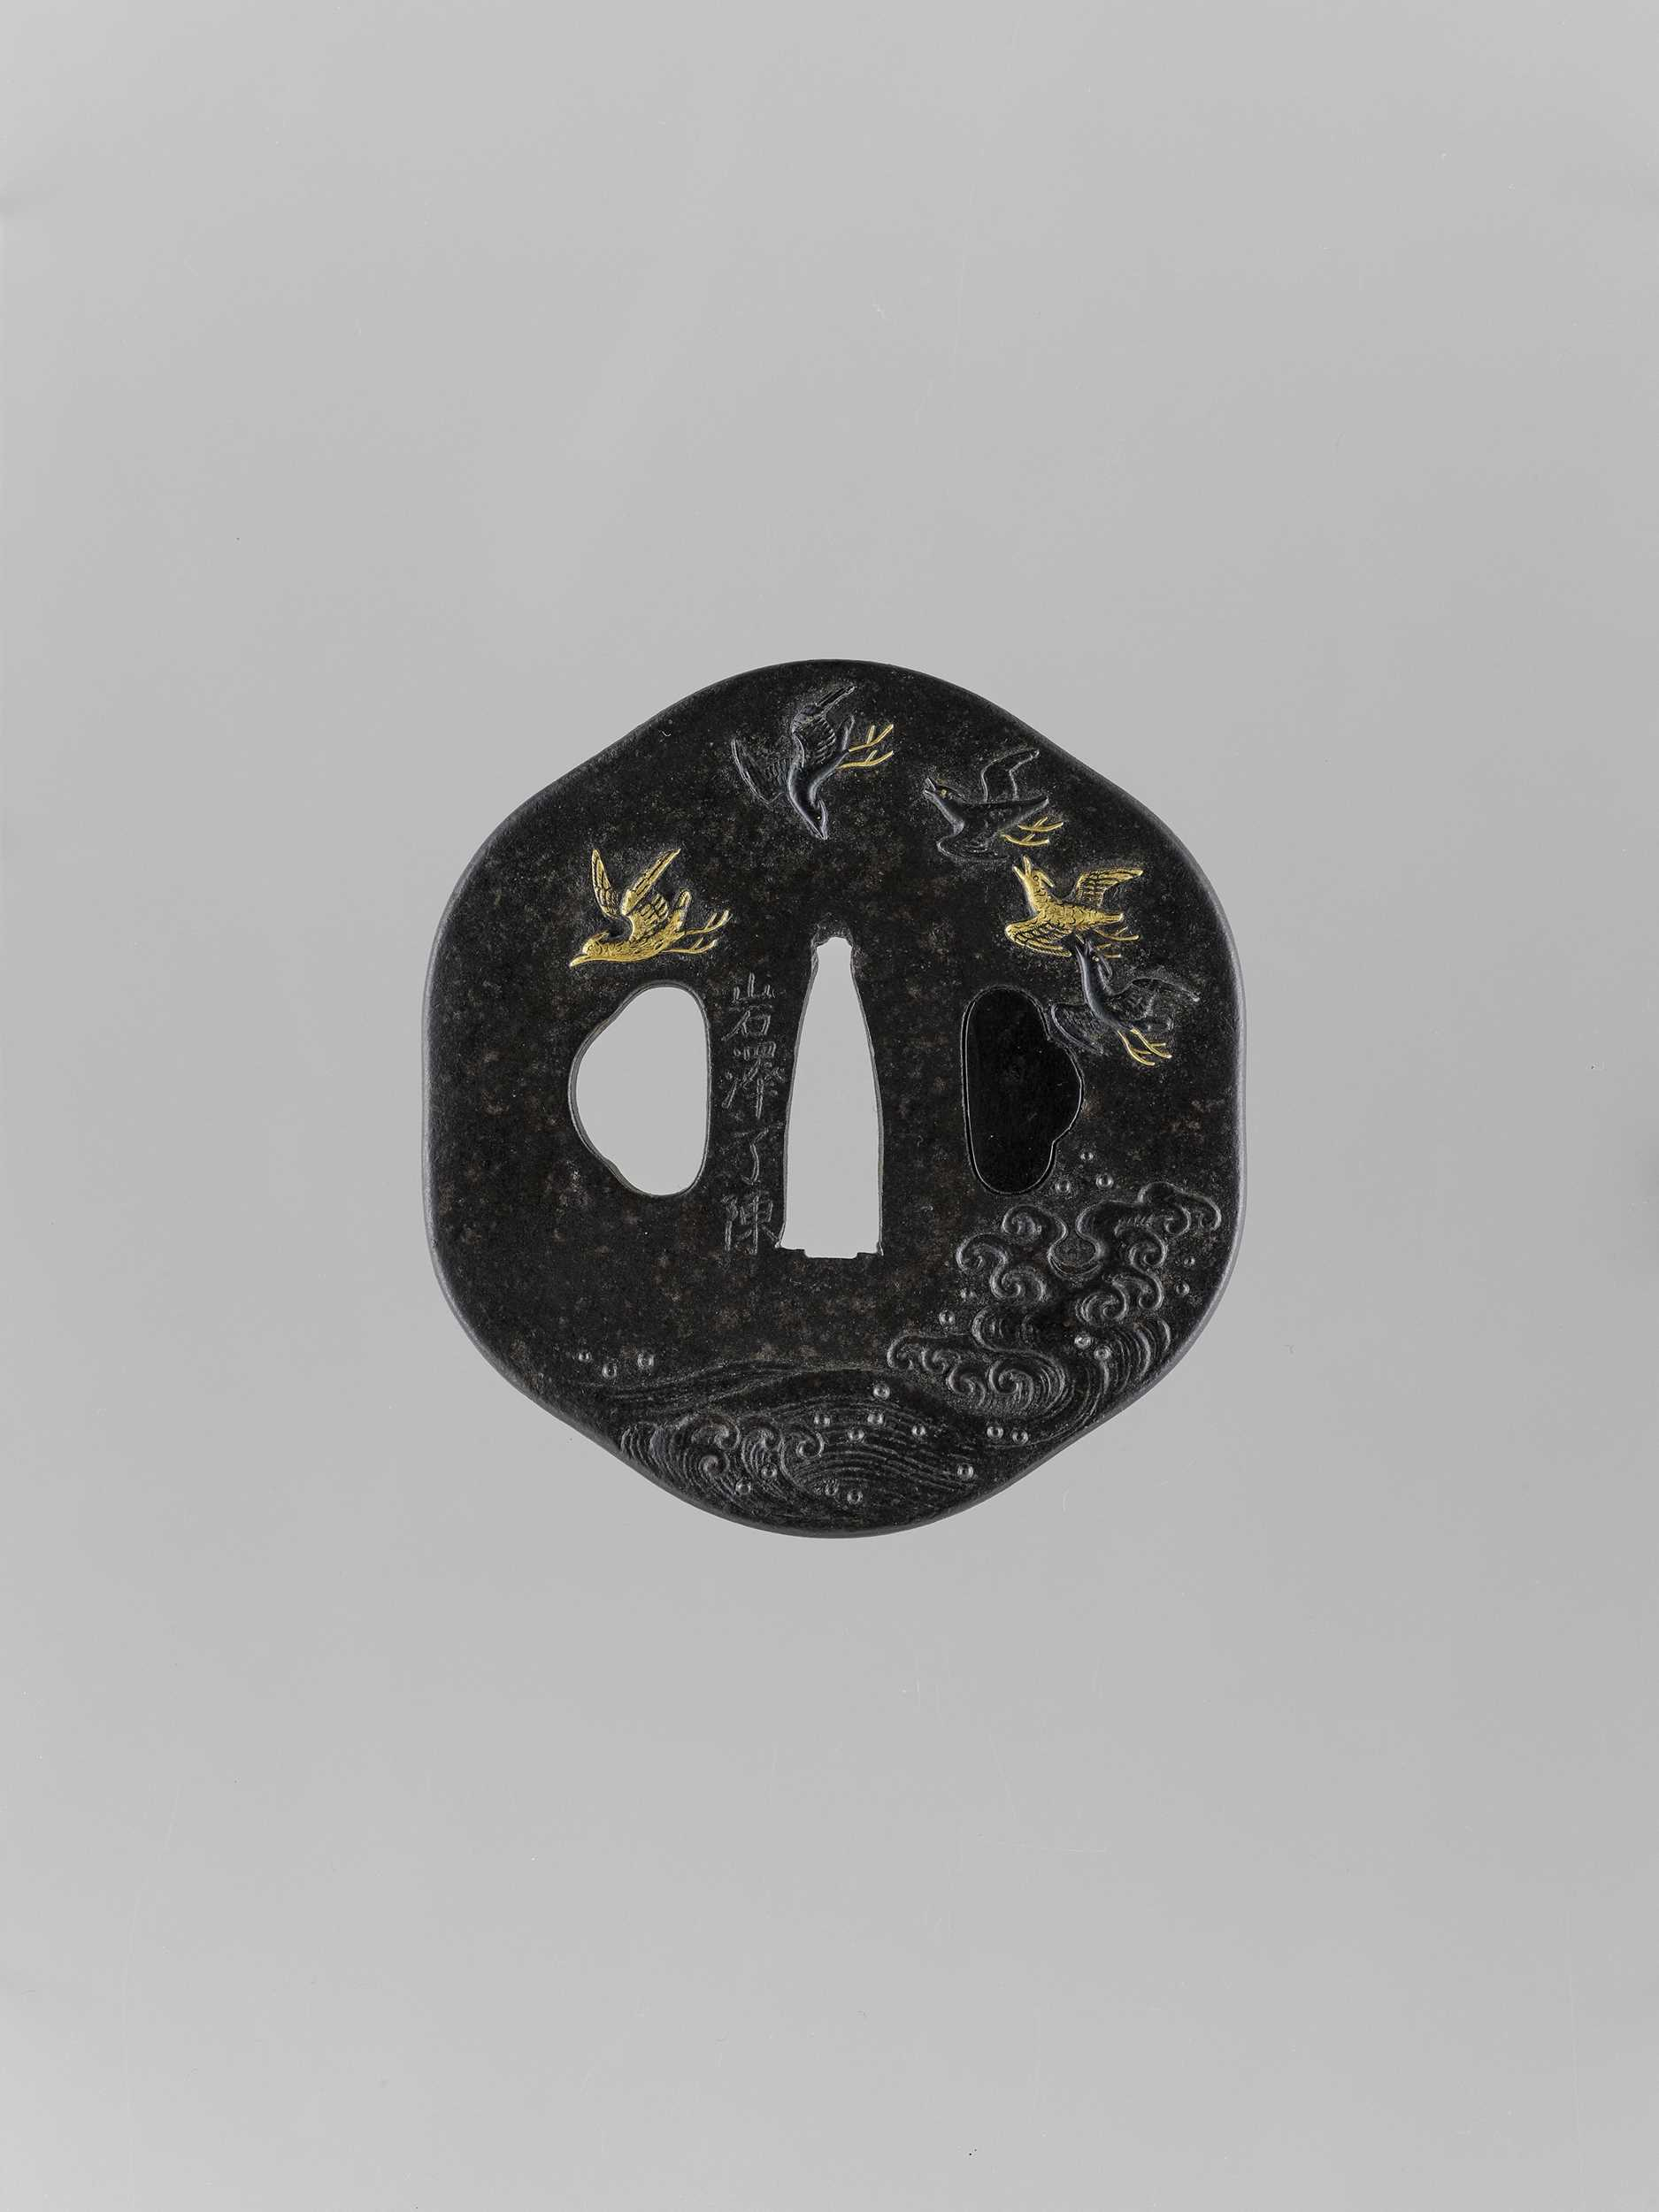 Lot 41 - AN INLAID IRON TSUBA WITH FLYING GEESE